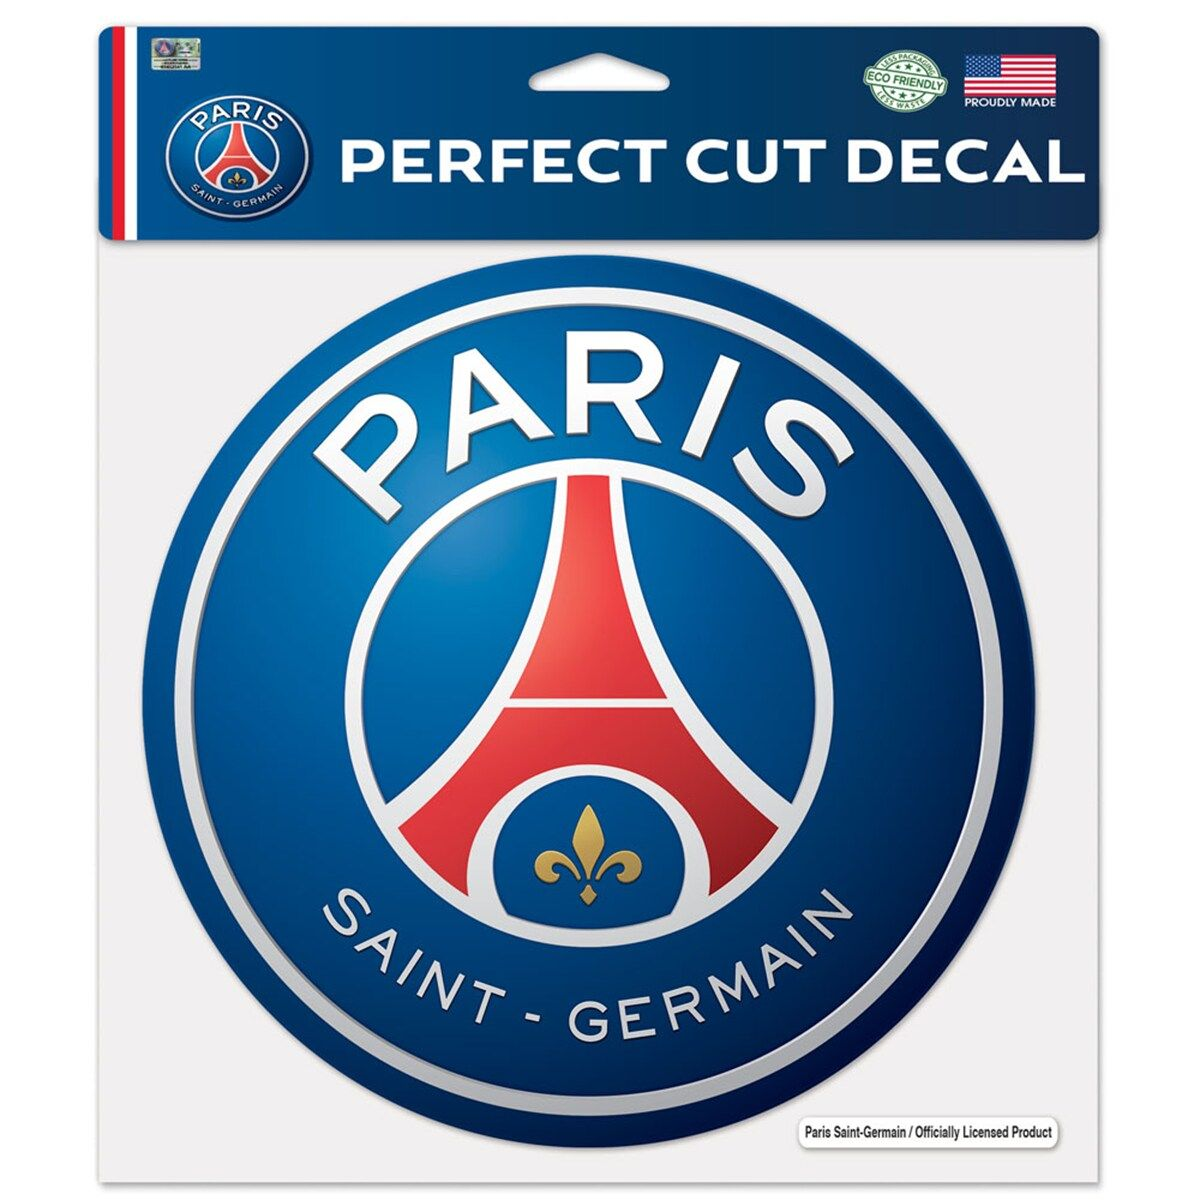 Paris Saint Germain 8x8 Decal Paris Saint Germain Paris Saint St Germain Paris